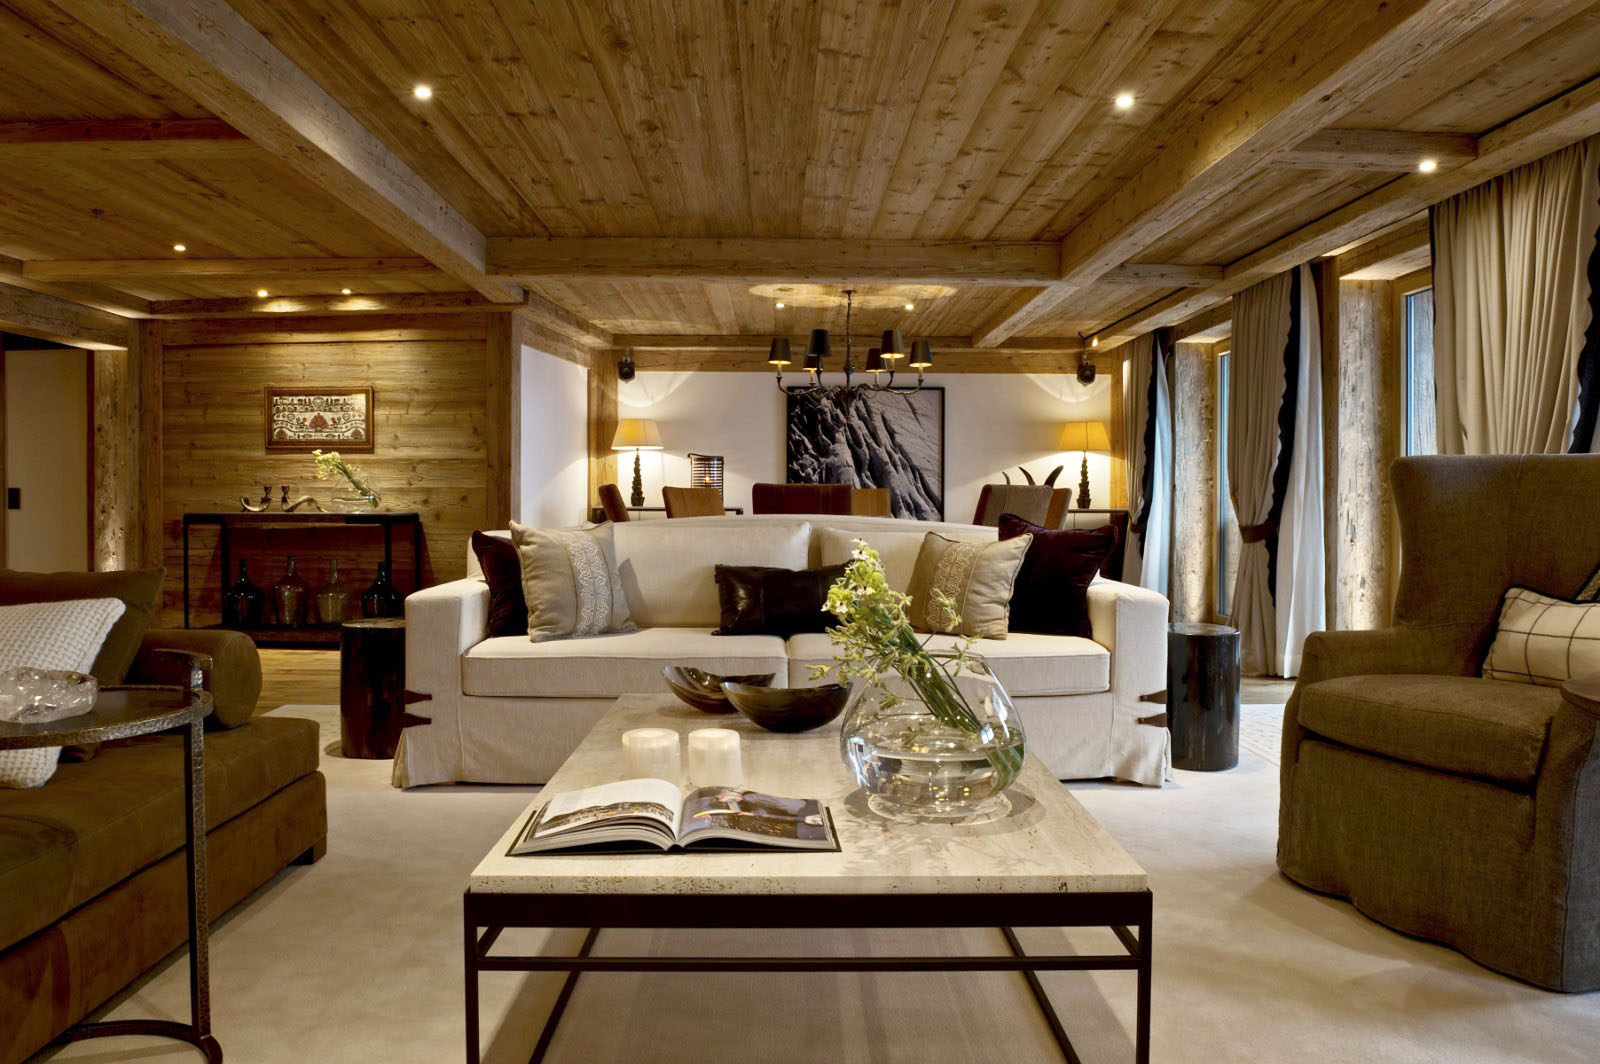 Rustic Alpine Style Wood Ceilings